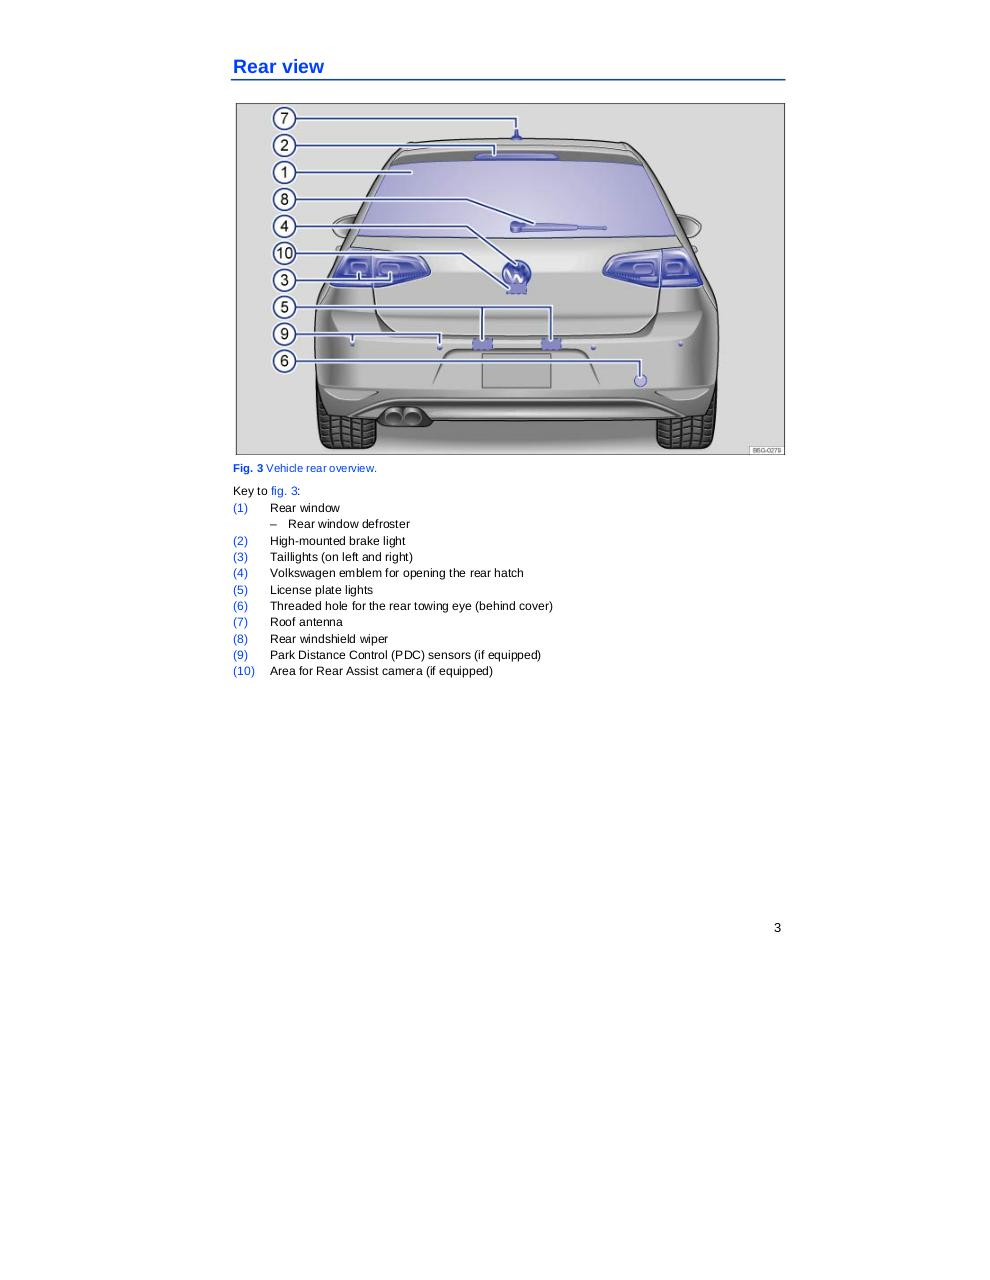 Golf Mk7 2014 Owners Manual.pdf - page 3/402